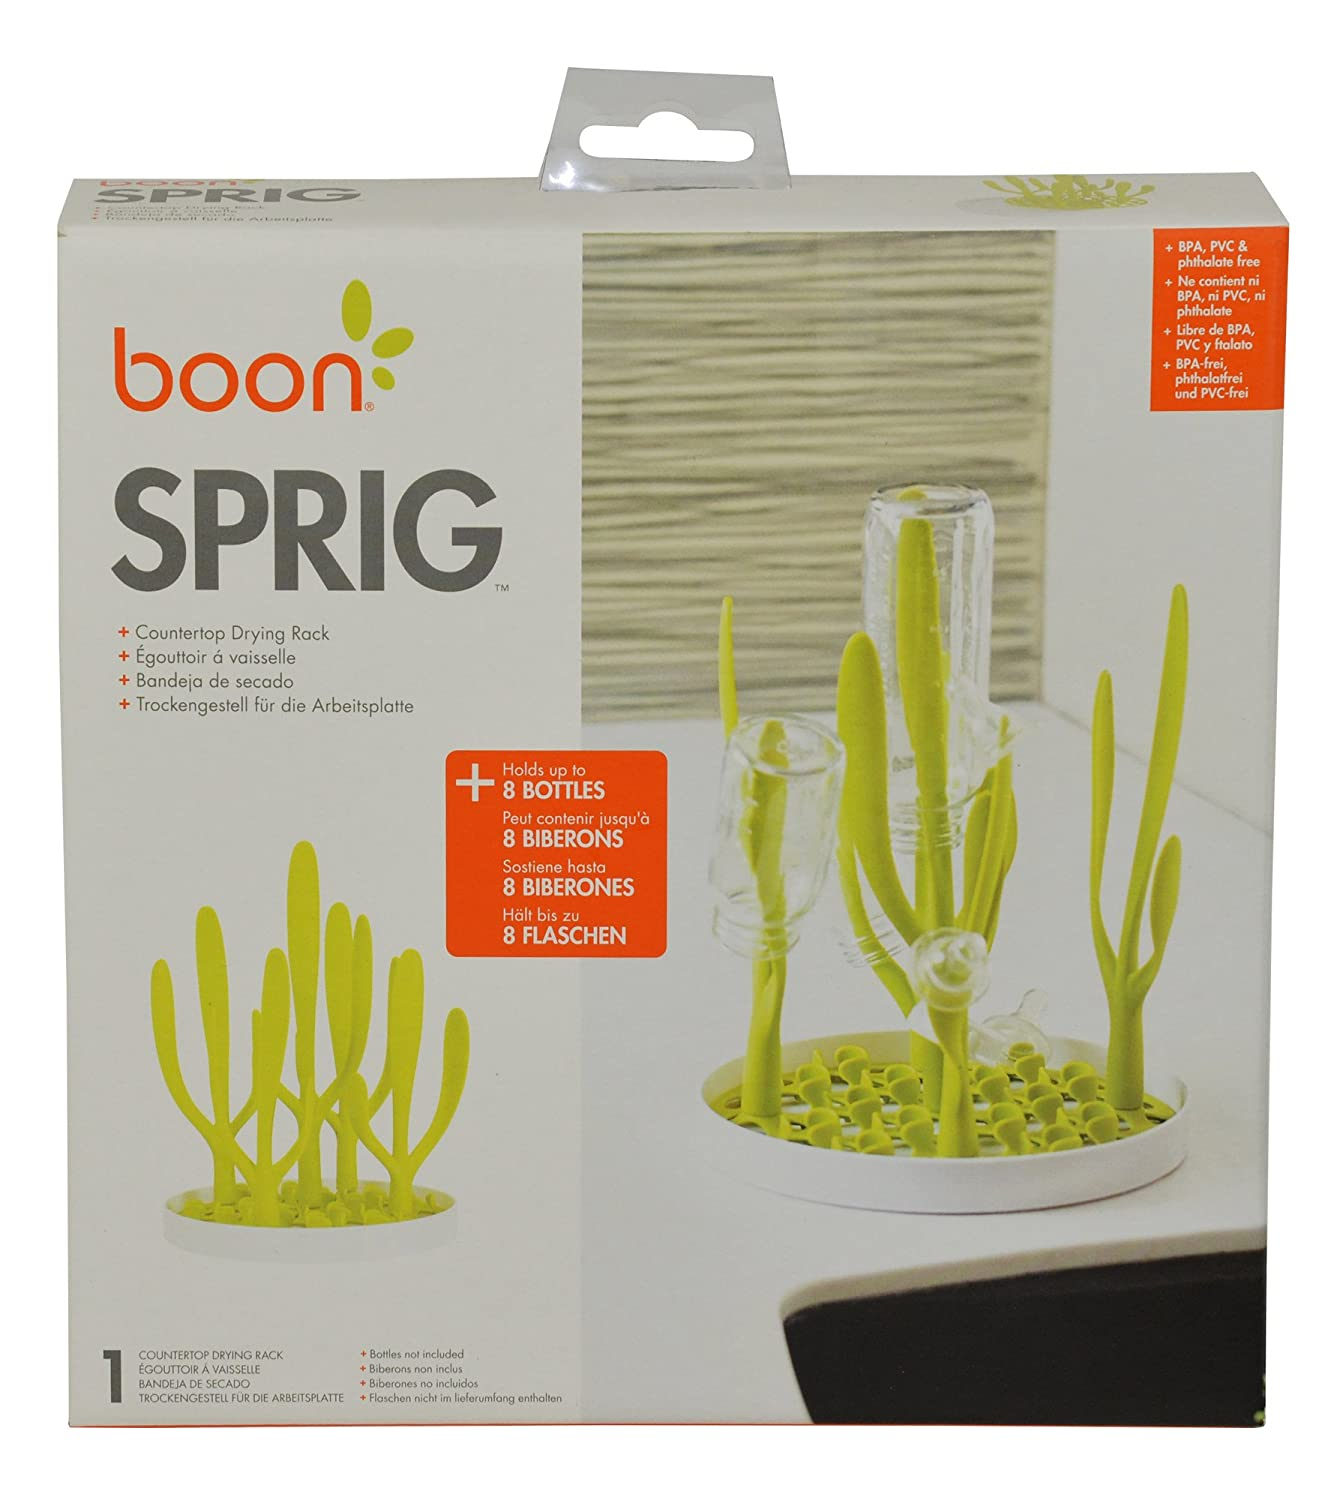 Sprig Boon Countertop Drying Rack Lawn Patch Multiple Variations Grass